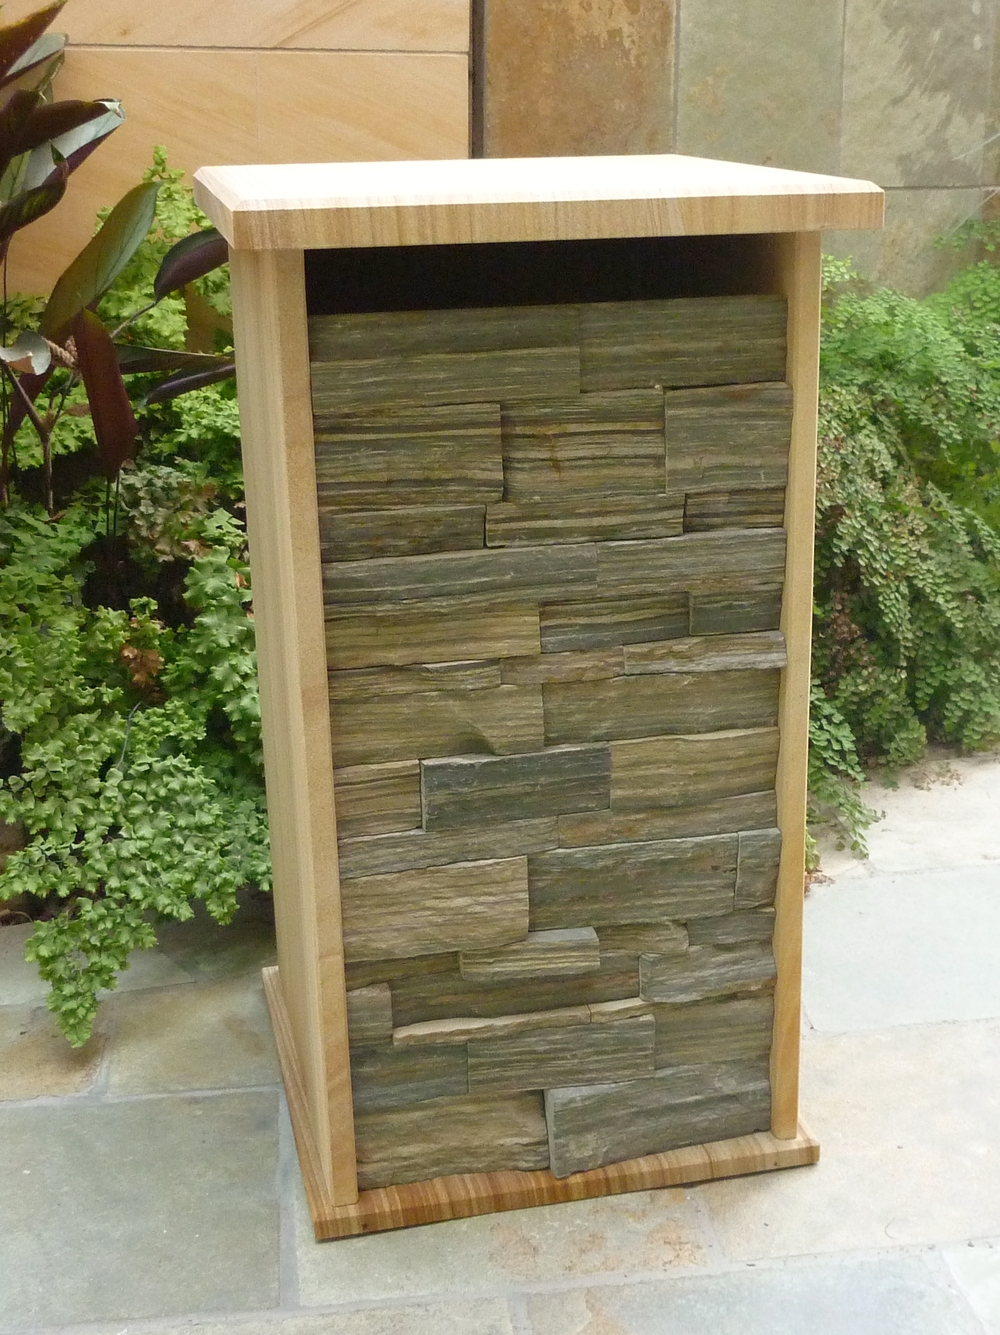 145 extra large letterbox with extra space for mail .JPG